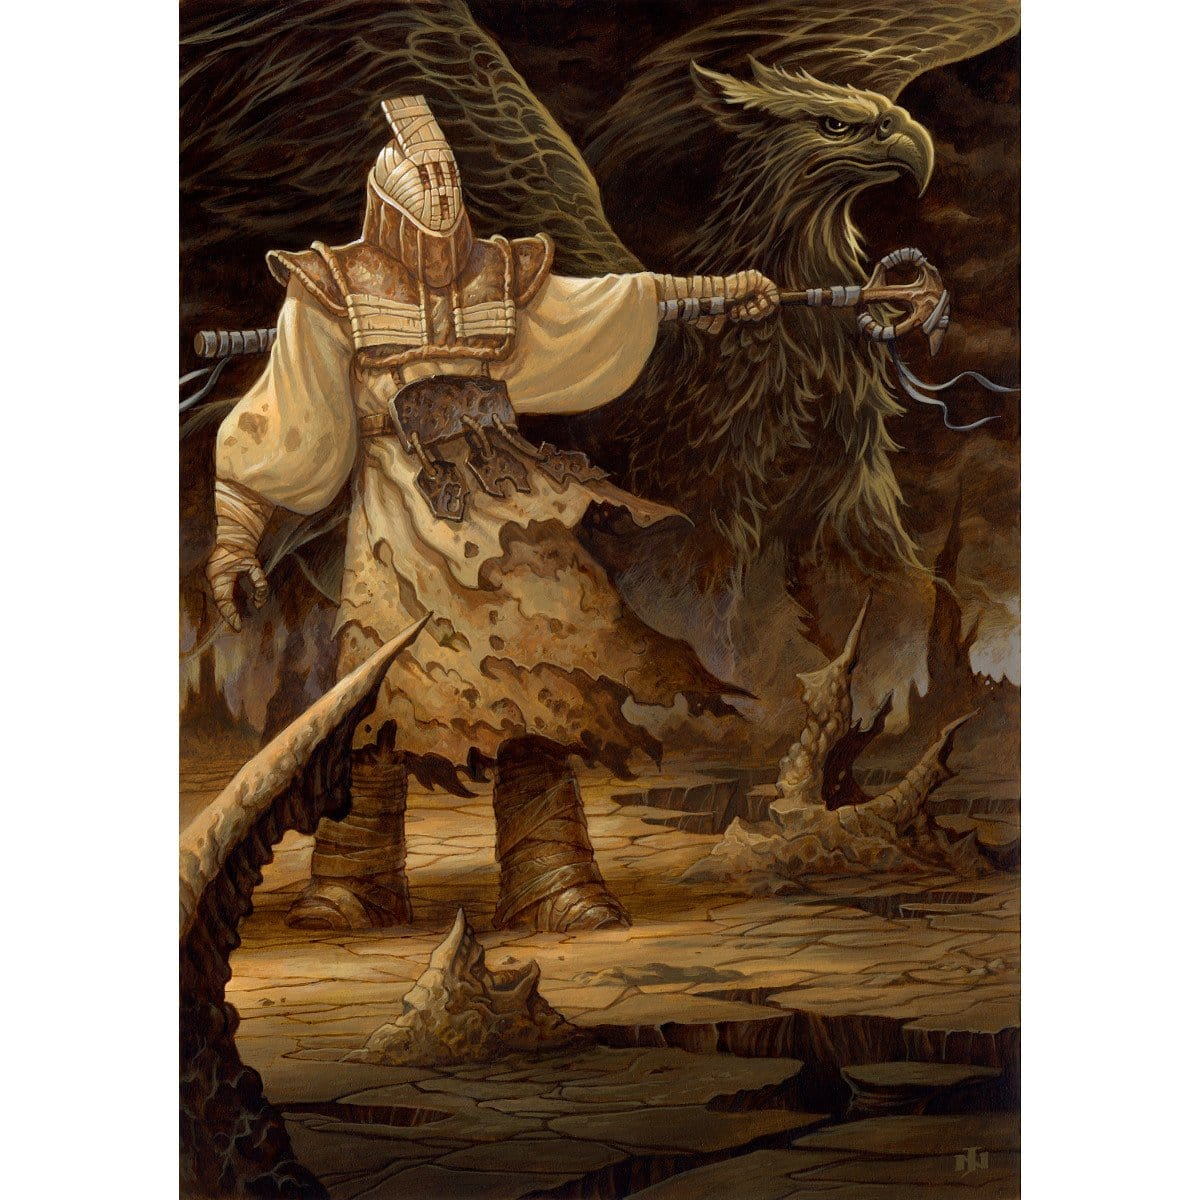 Griffin Guide Print - Print - Original Magic Art - Accessories for Magic the Gathering and other card games